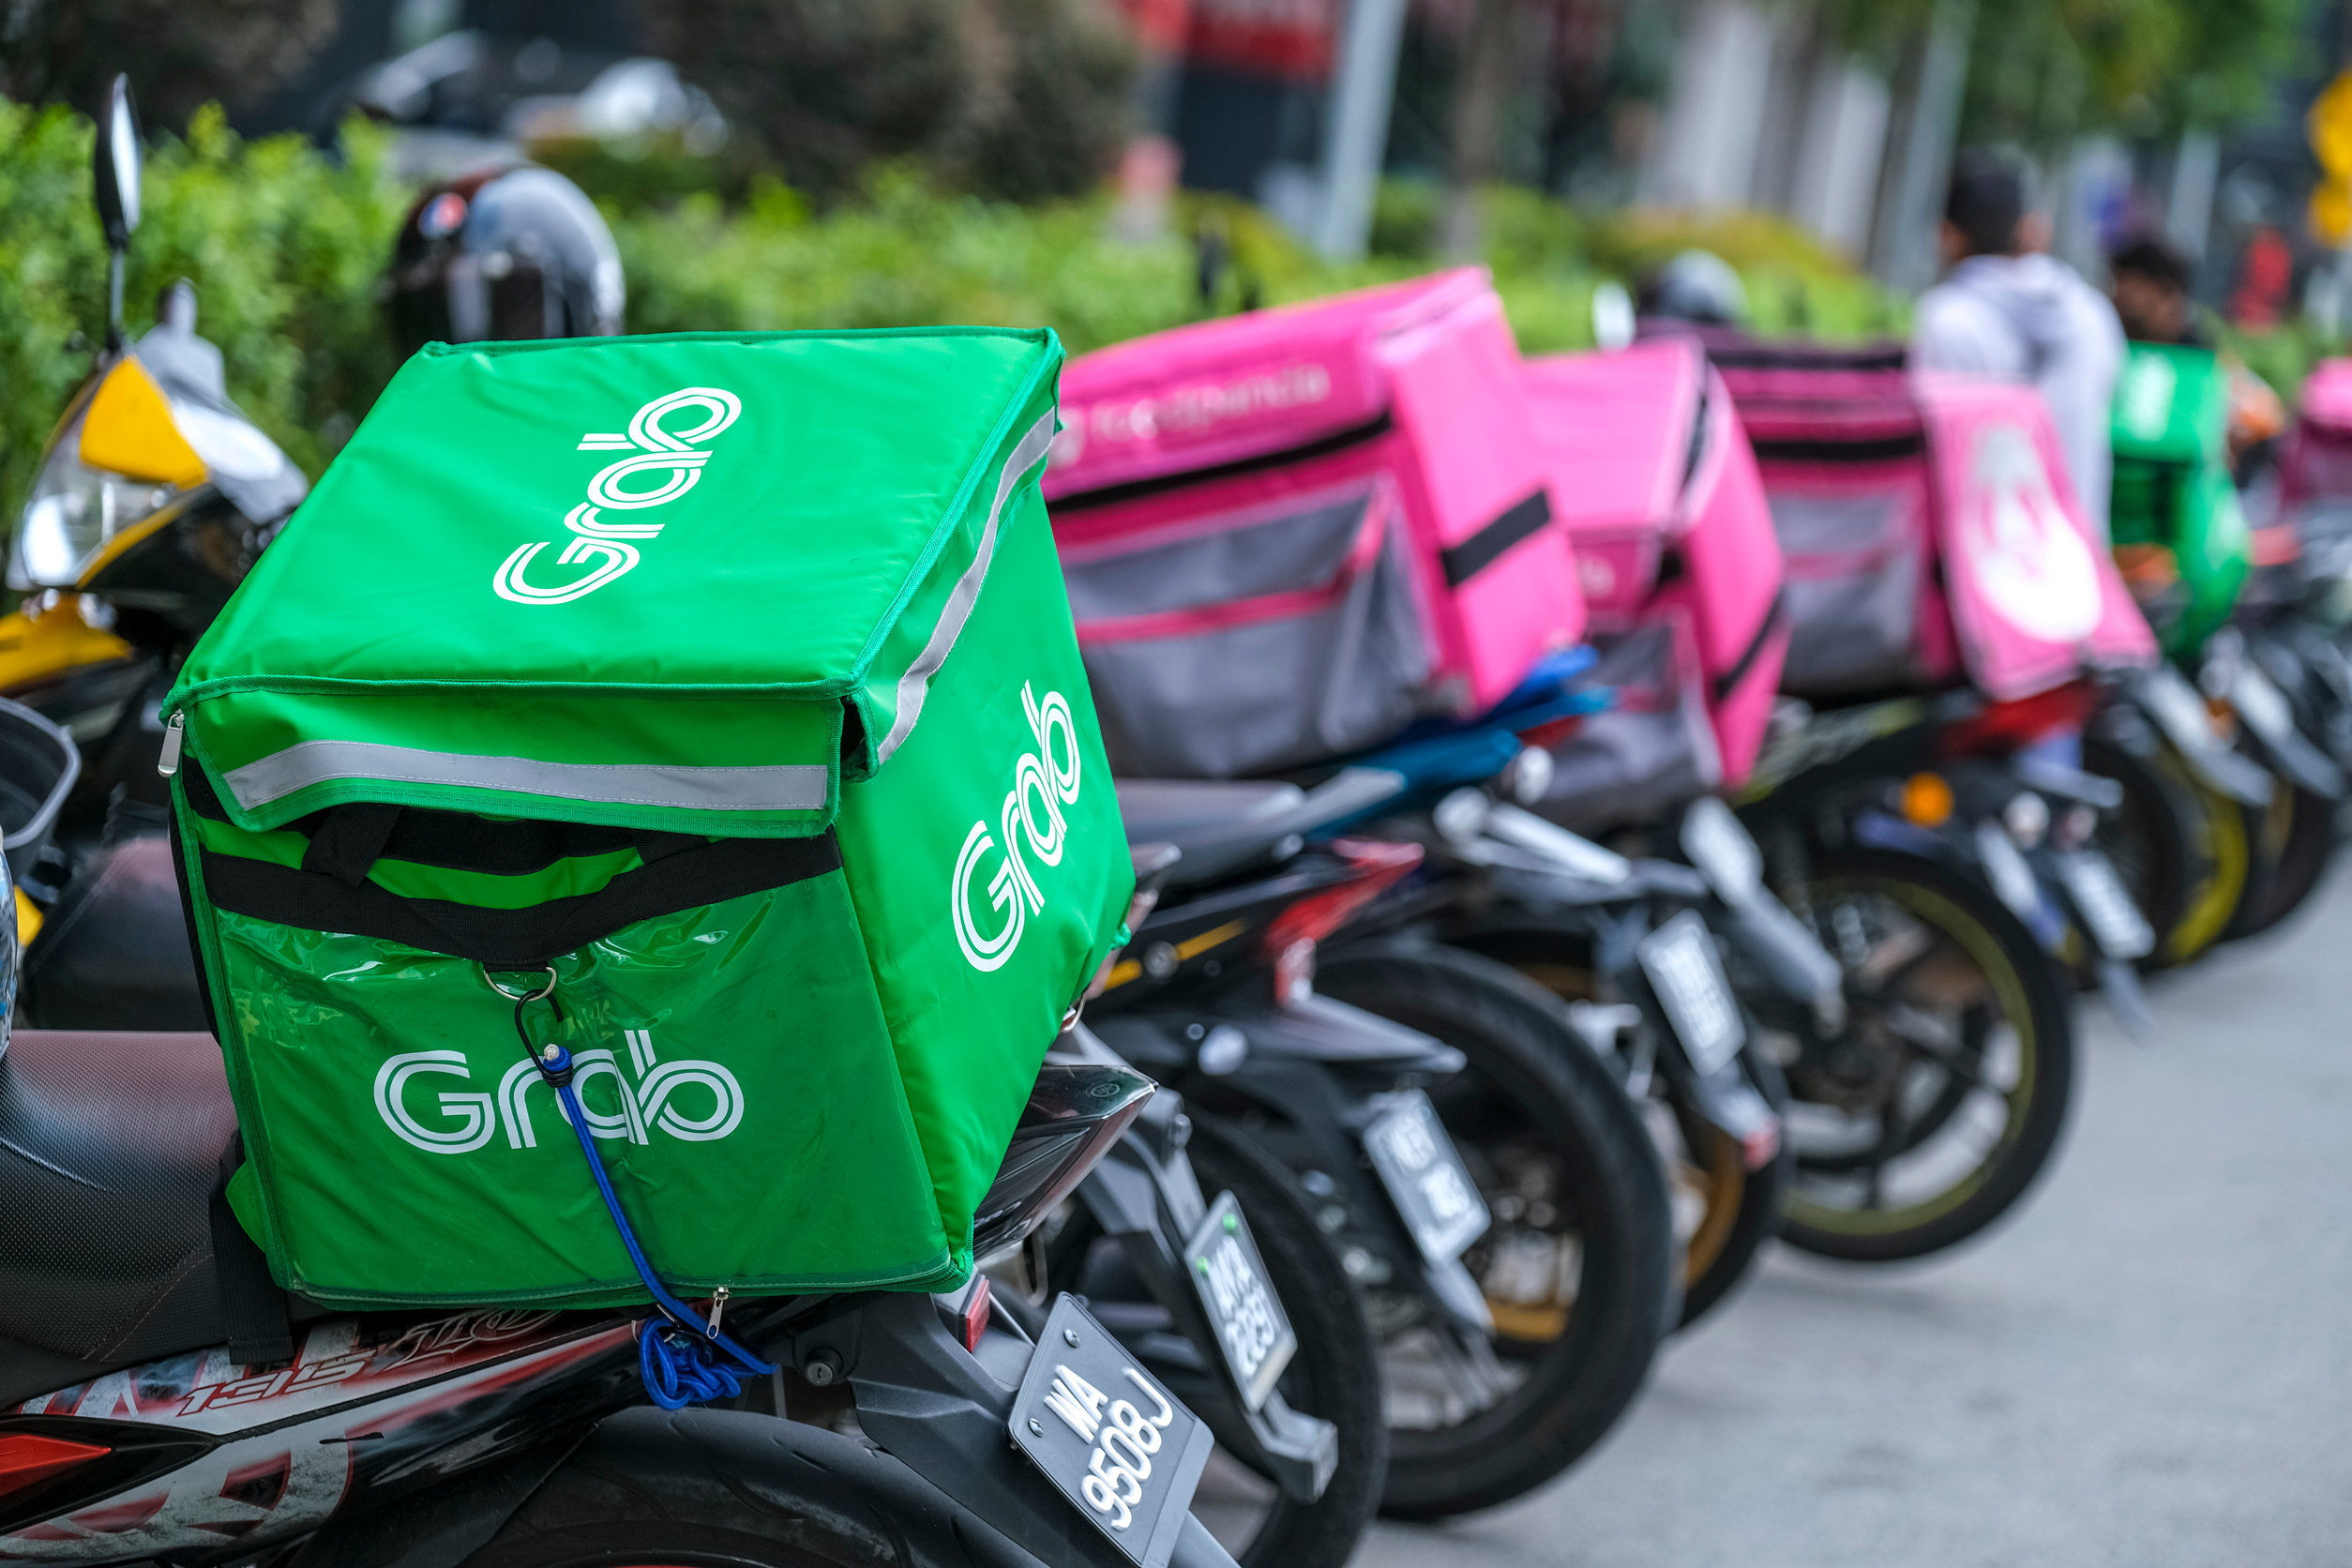 Malaysia's Online Food Delivery Exploded with the Help of the Internet. Here's Why.